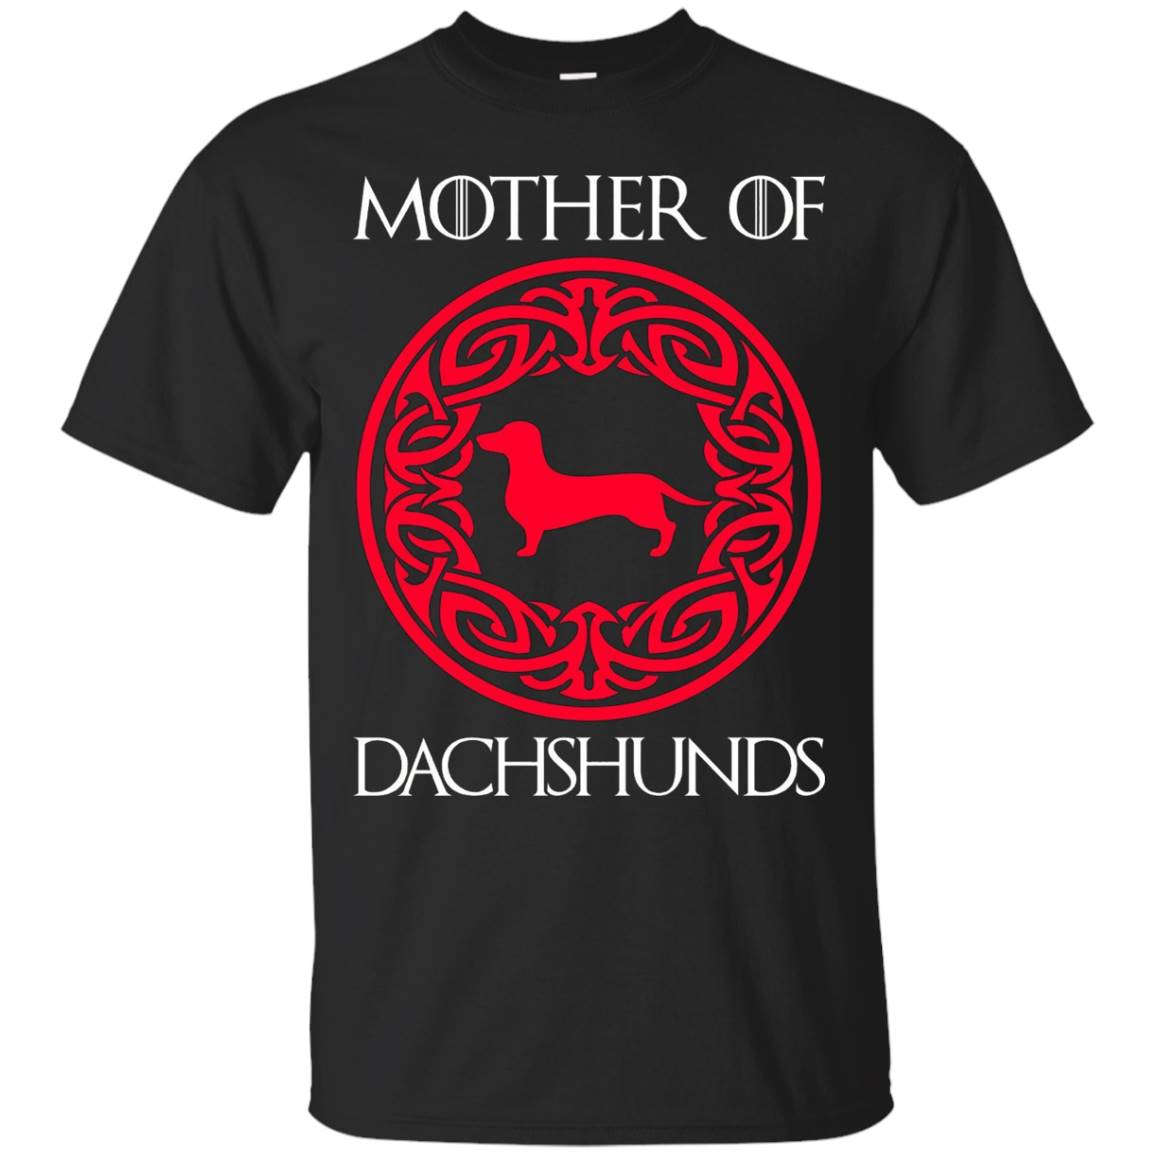 Mother Of Dachshunds T-Shirt – Funny Dachshund Lover T-Shirts